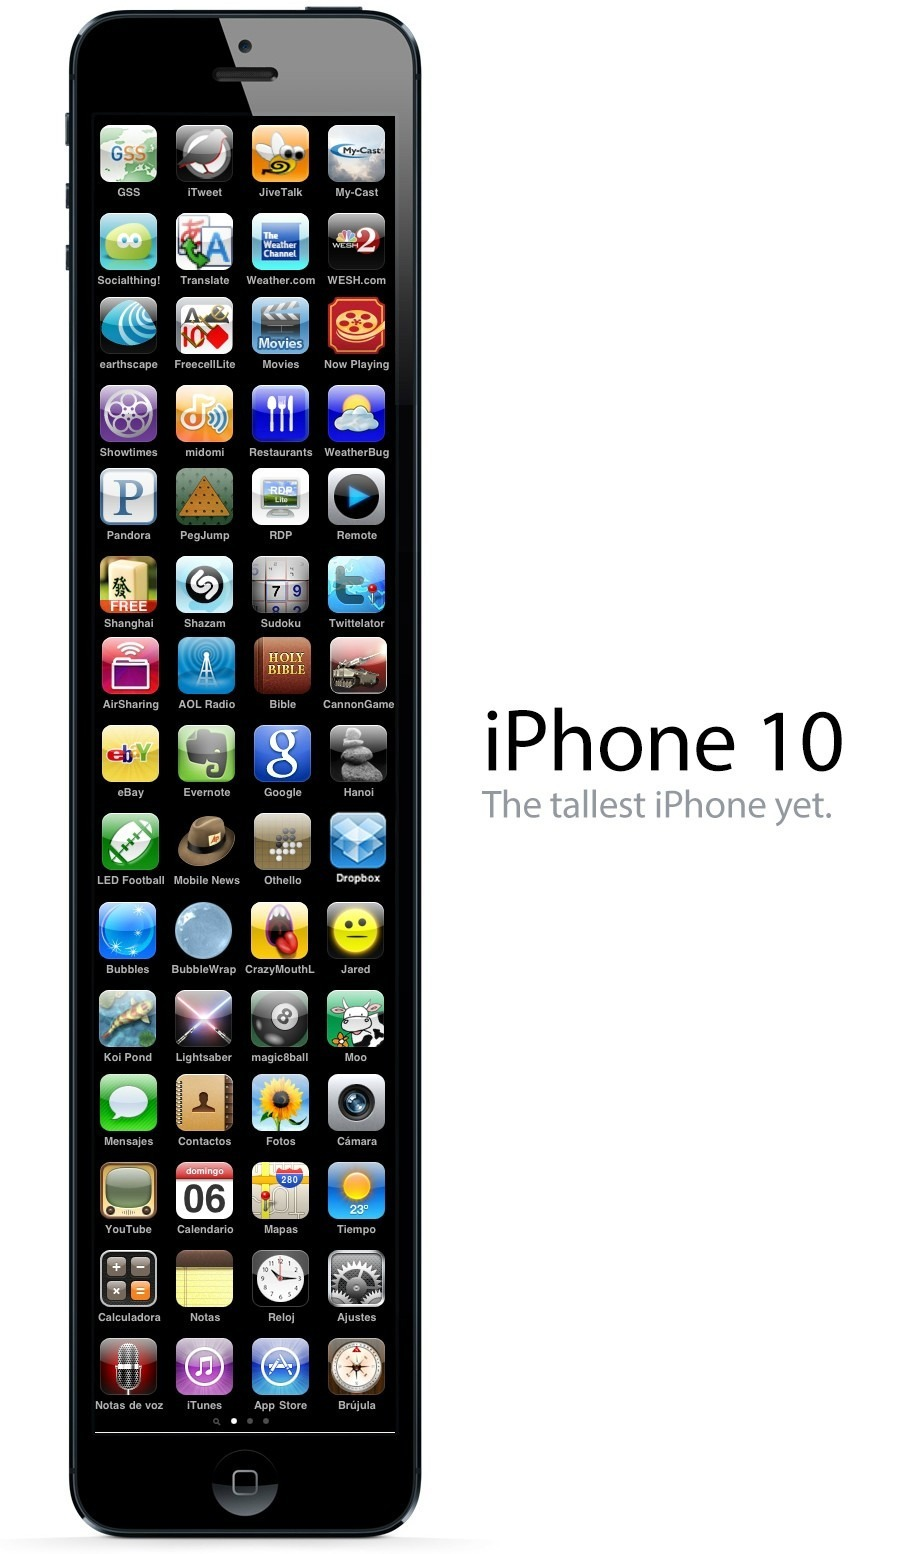 RT @brenoamaro: Vazou a foto do novo iPhone 10 http://t.co/sBdveI3hkt